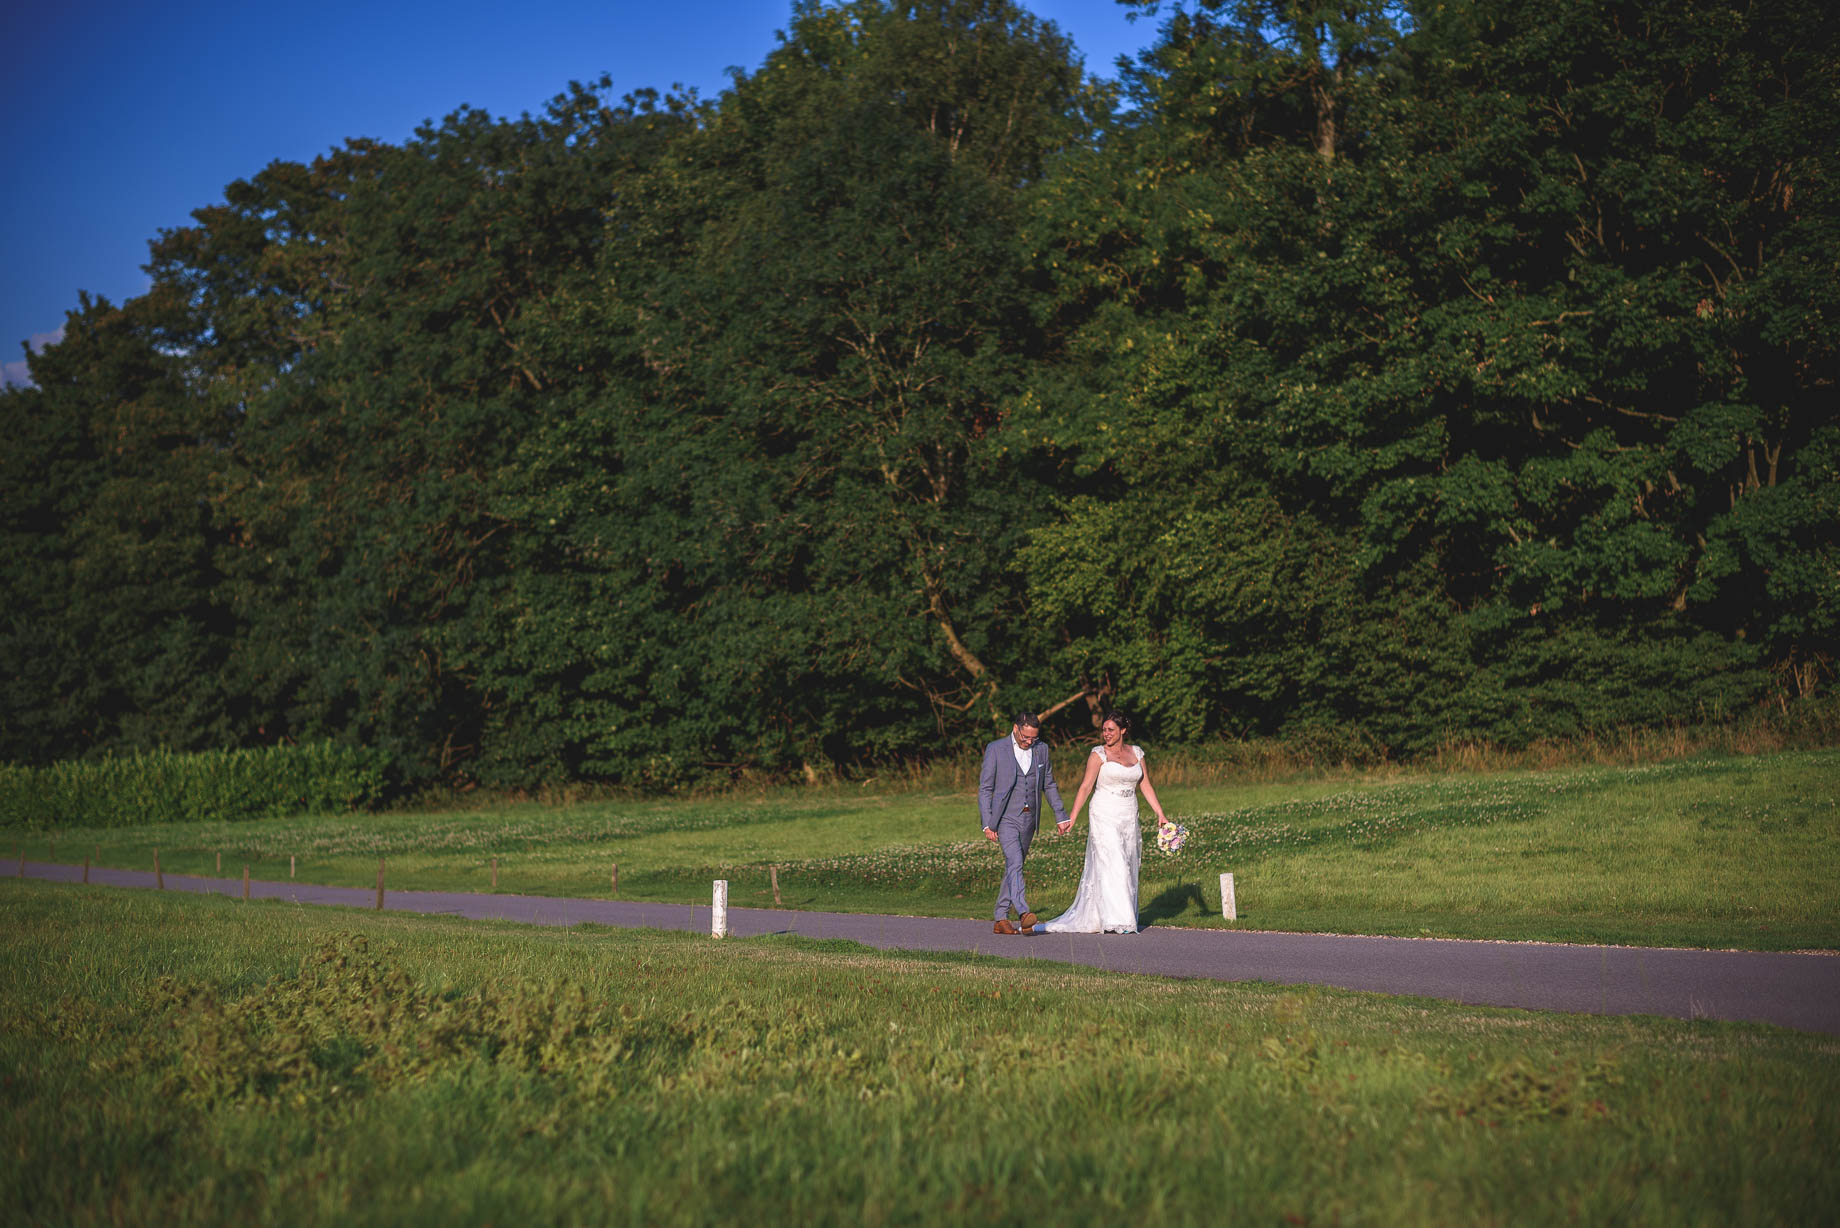 Luton Hoo wedding photography by Guy Collier Photography - Lauren and Gem (147 of 178)